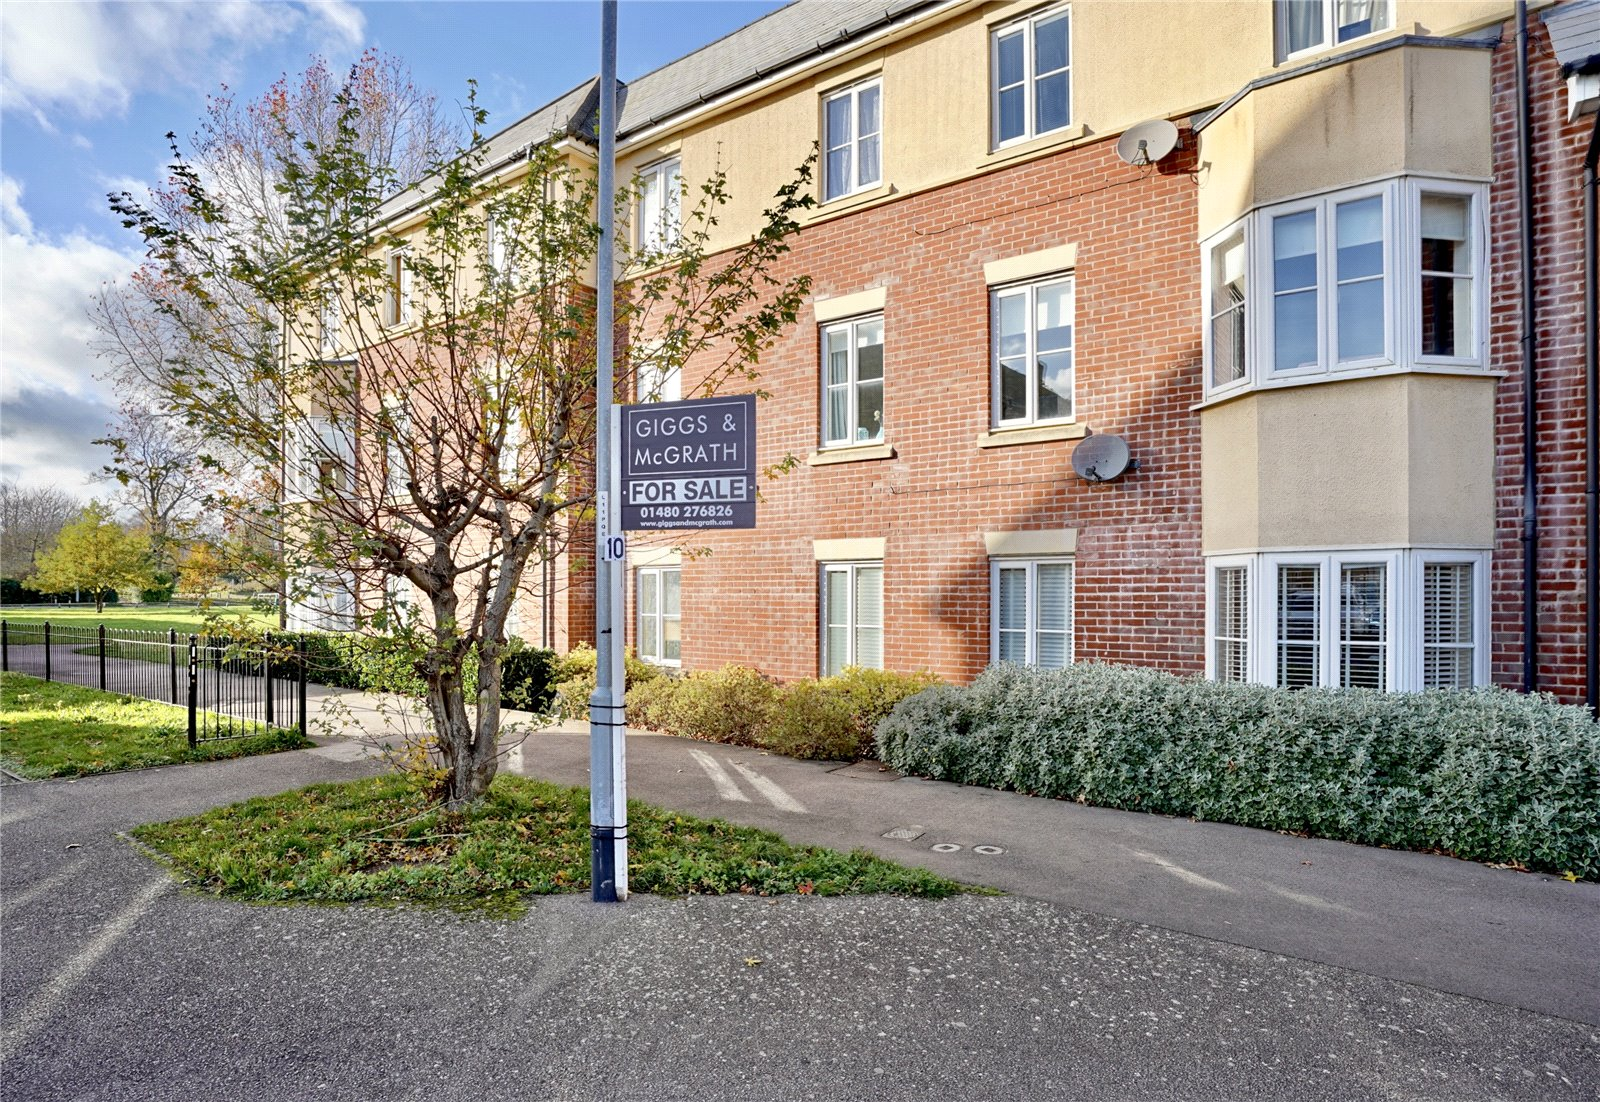 2 bed apartment for sale in Papworth Everard, CB23 3RZ  - Property Image 1